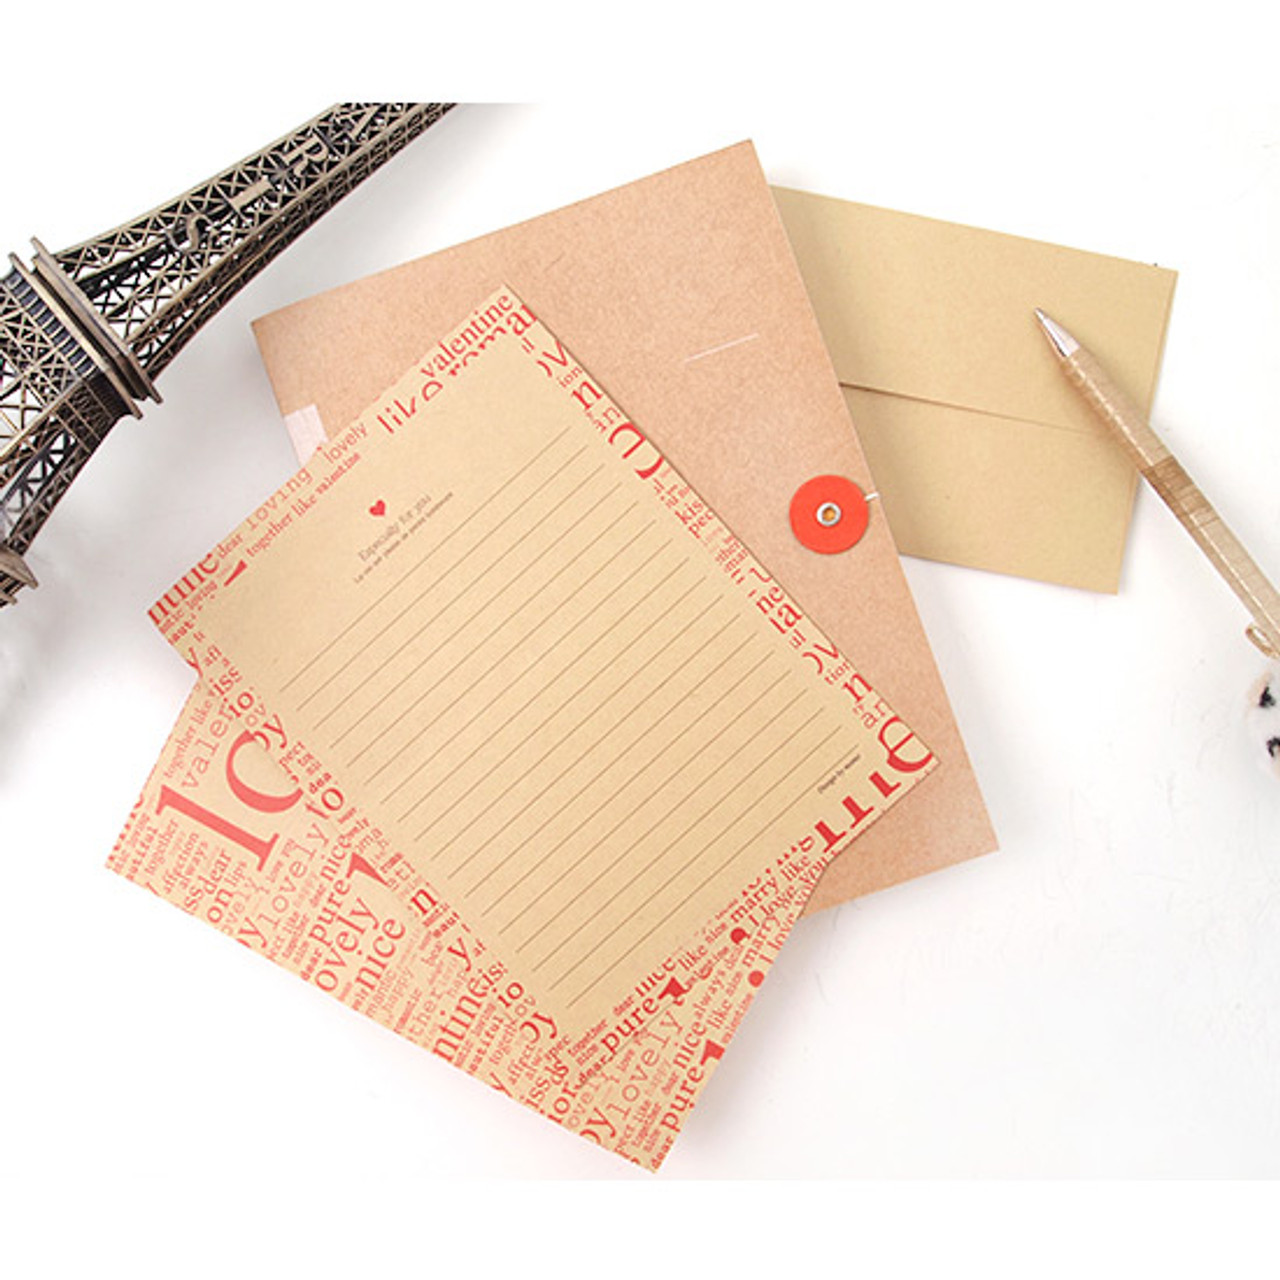 2young especially for you kraft letter paper and envelope set